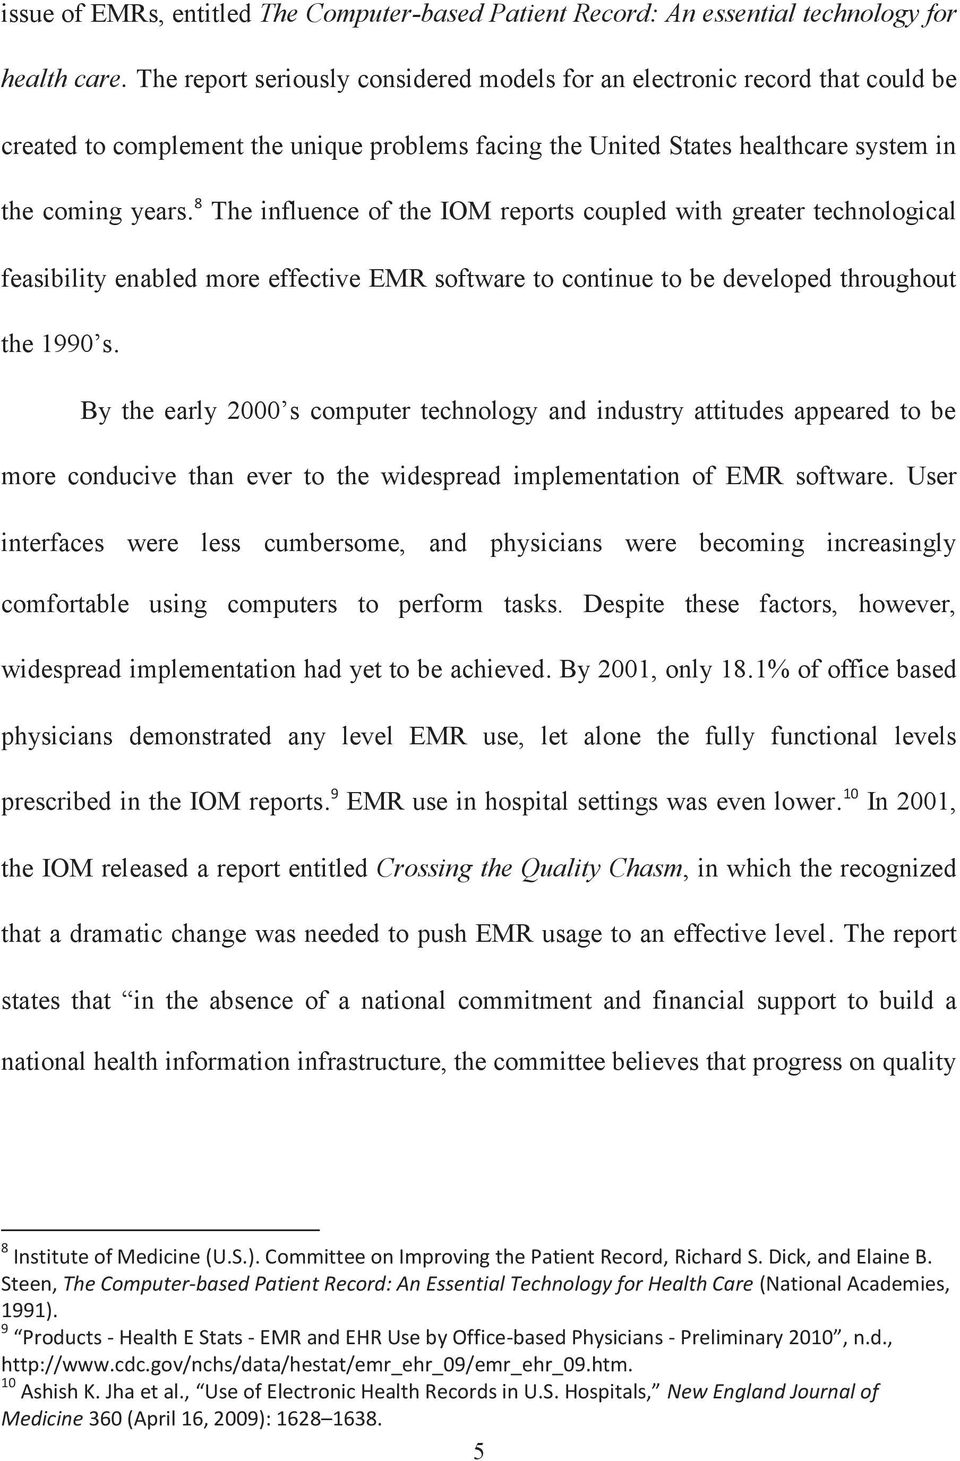 8 The influence of the IOM reports coupled with greater technological feasibility enabled more effective EMR software to continue to be developed throughout the 1990 s.